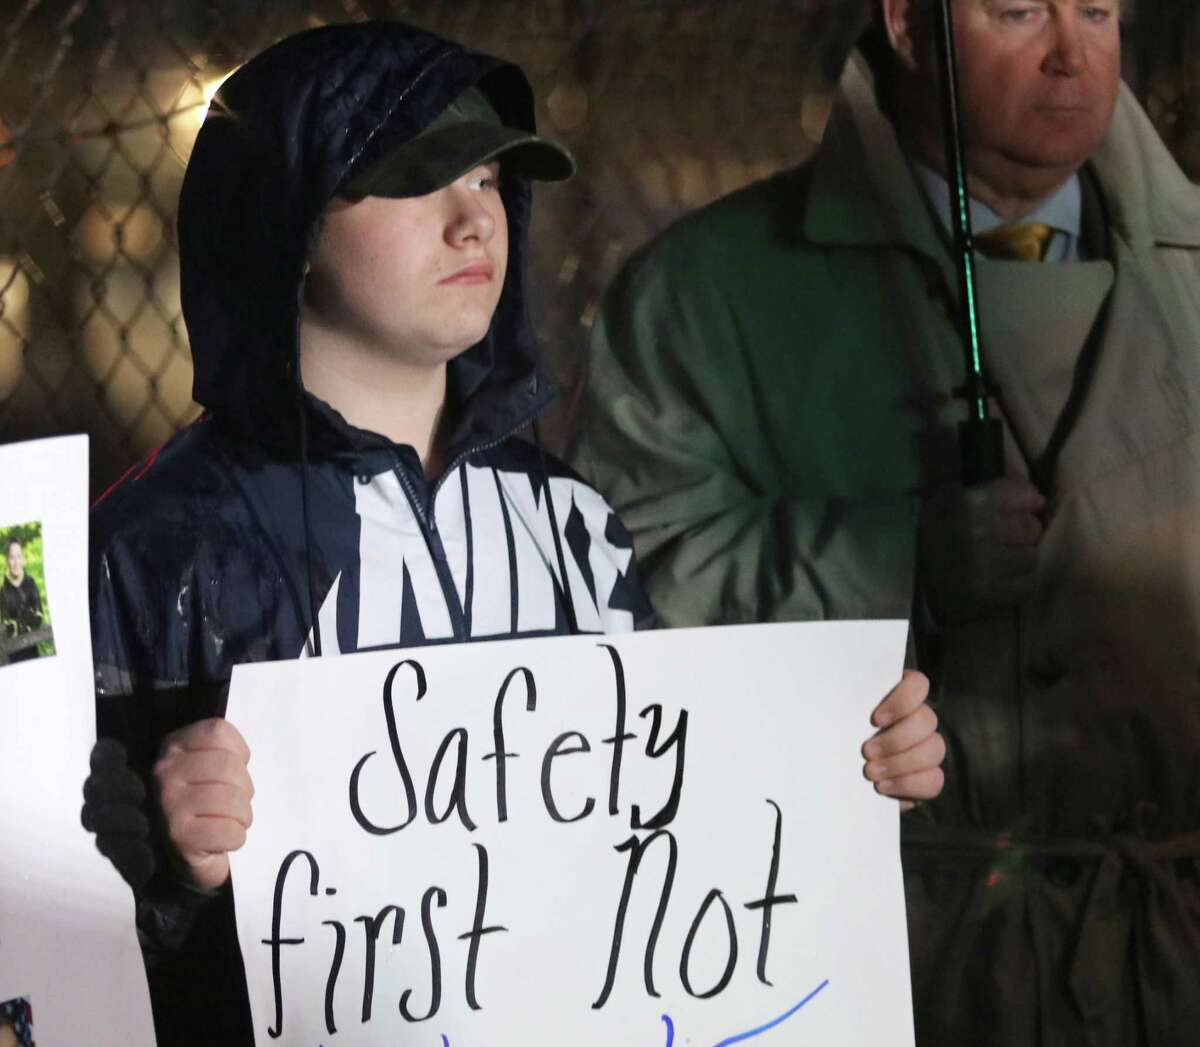 Saratoga Springs High School tenth grader Hunter Coons holds a sign supporting re-arming school monitors outside Saratoga Springs High School before attending the Saratoga Springs School District's Board of Education meeting Tuesday, October 23, 2018. Retired NYS trooper John Neeley stands at right. (Ed Burke photo-Special to The Times Union)